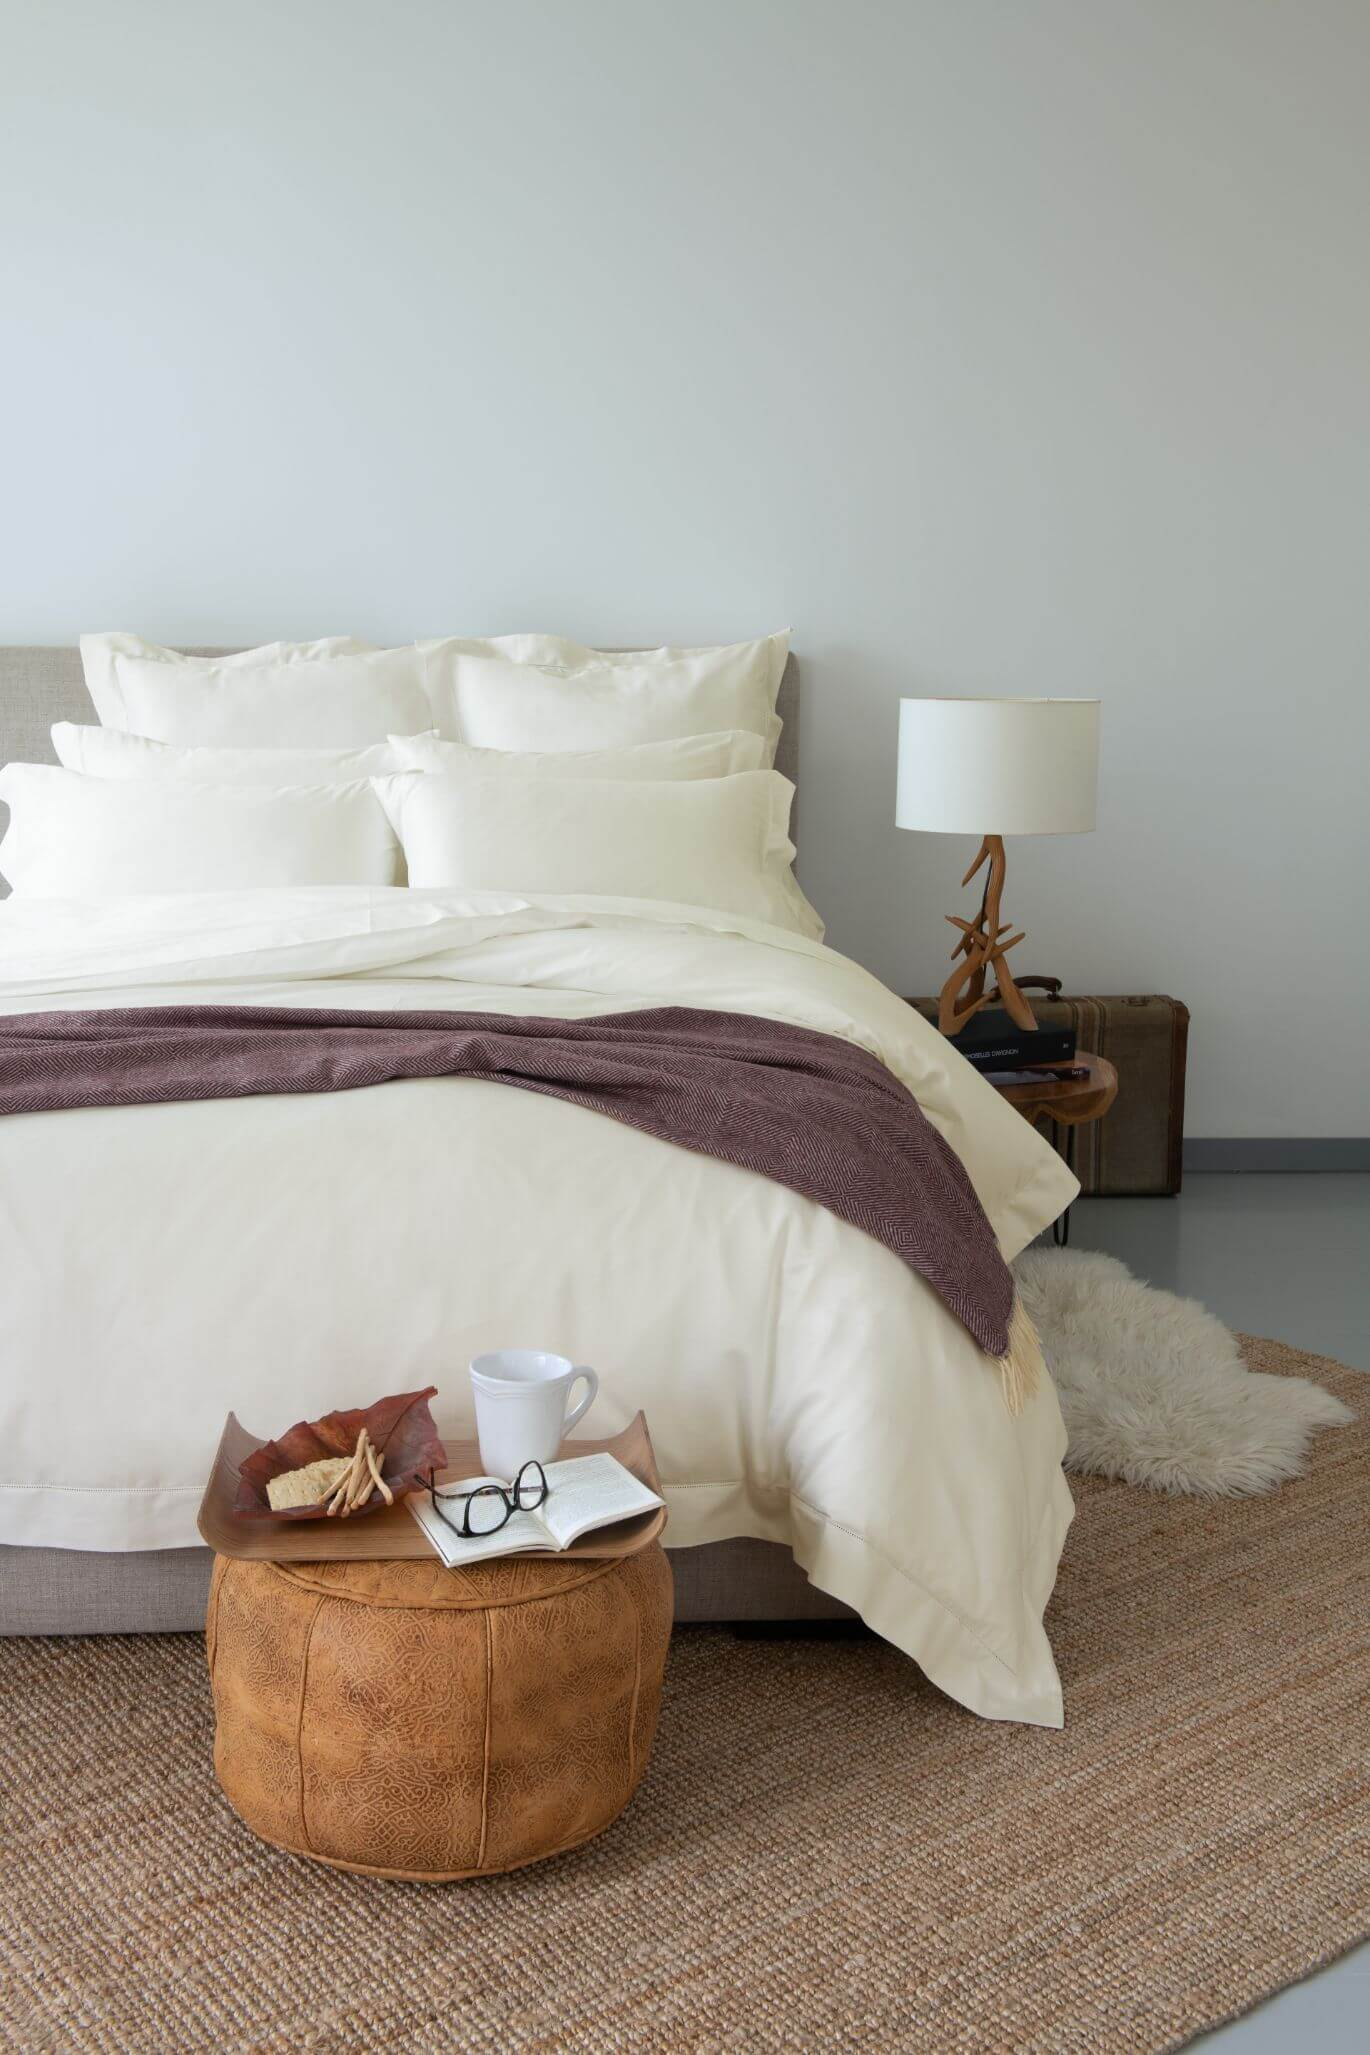 Marialma's Ivory bed sheets in a sustainable bedroom